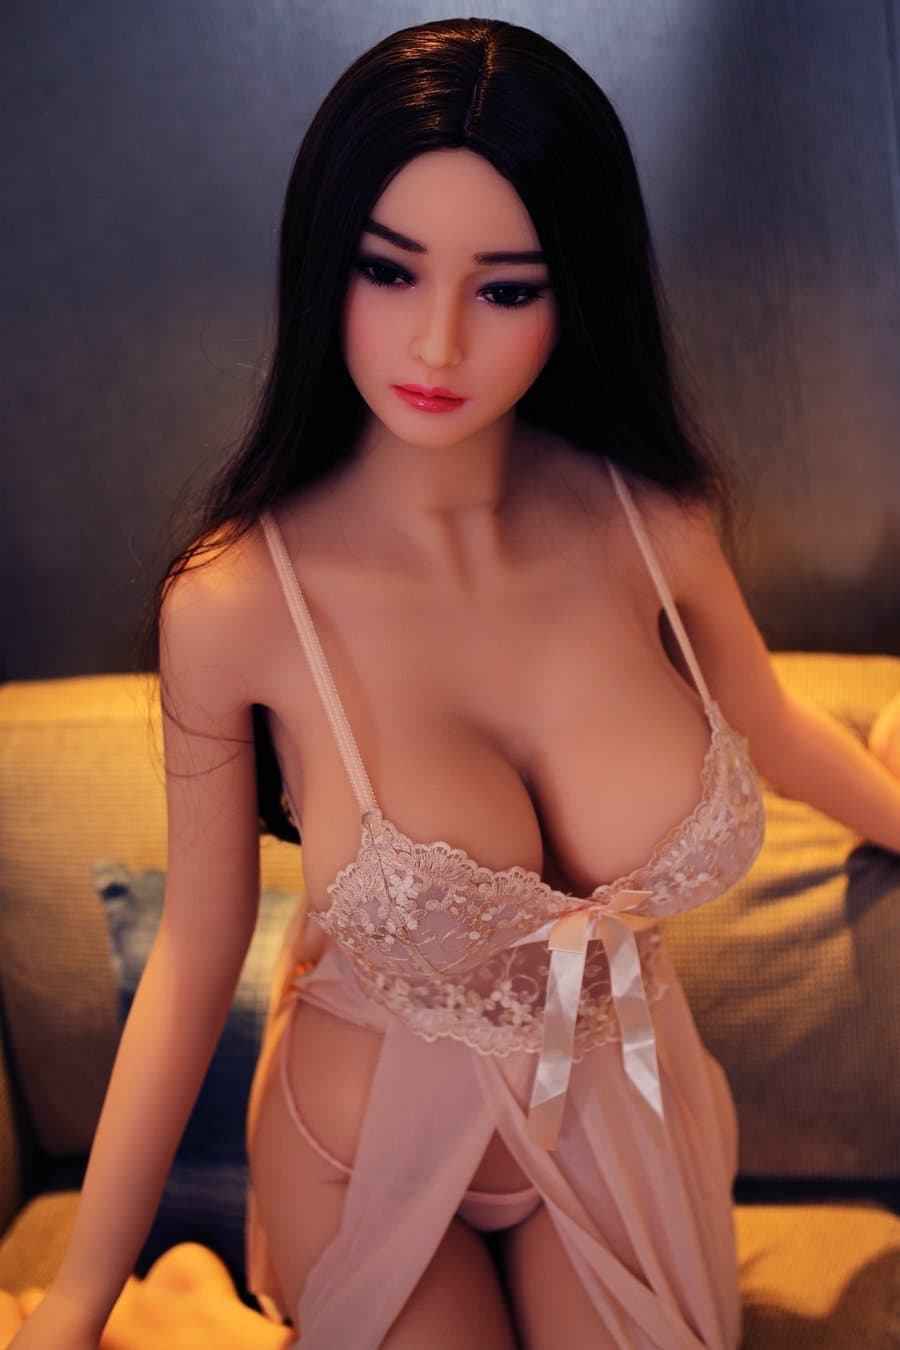 erica 165cm af black hair japanese big boobs skinny tpe asian sex doll(4)